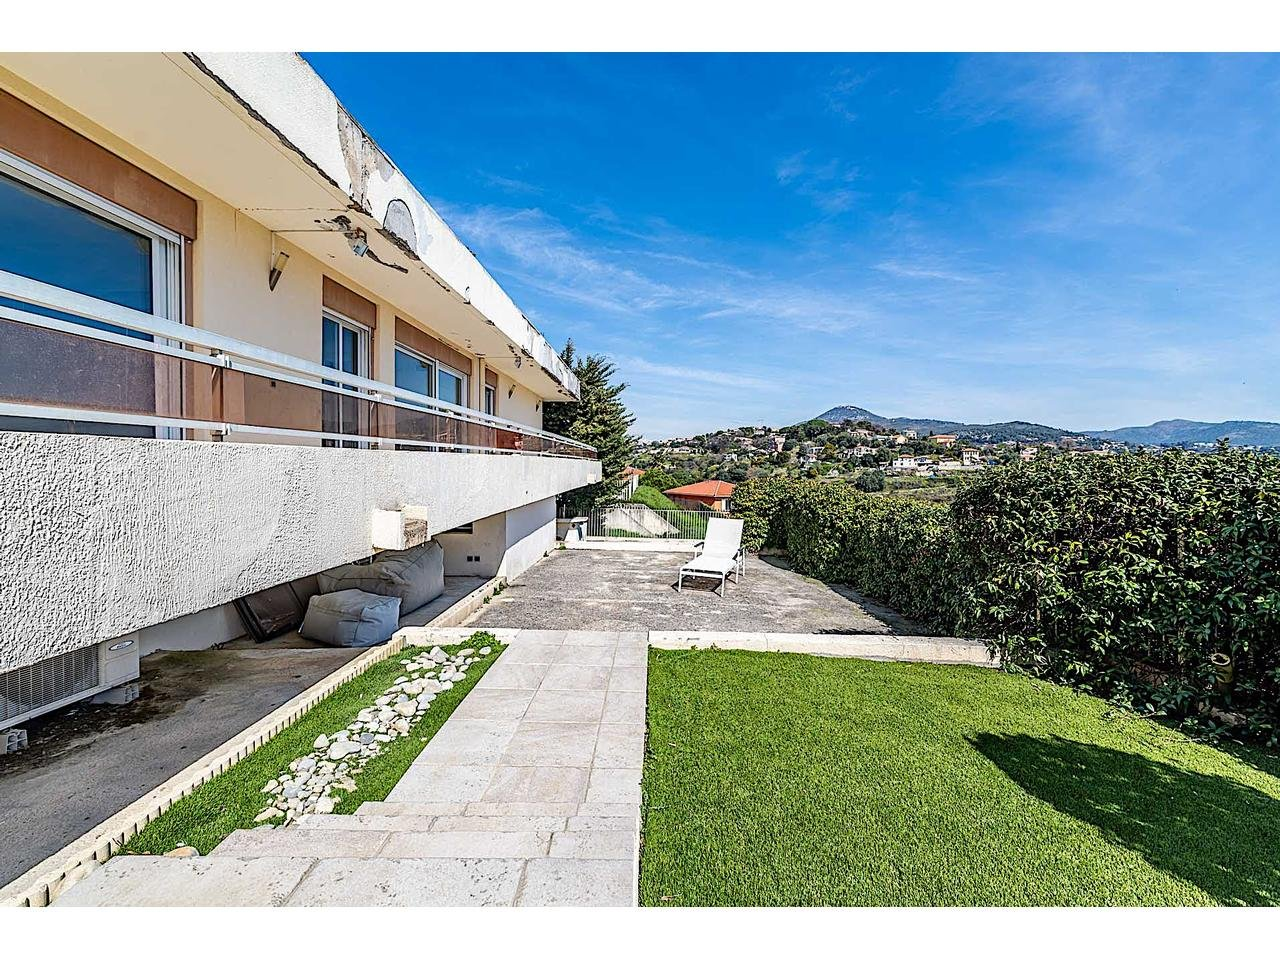 Appartement  5 Rooms 171.24m2  for sale   760000 €